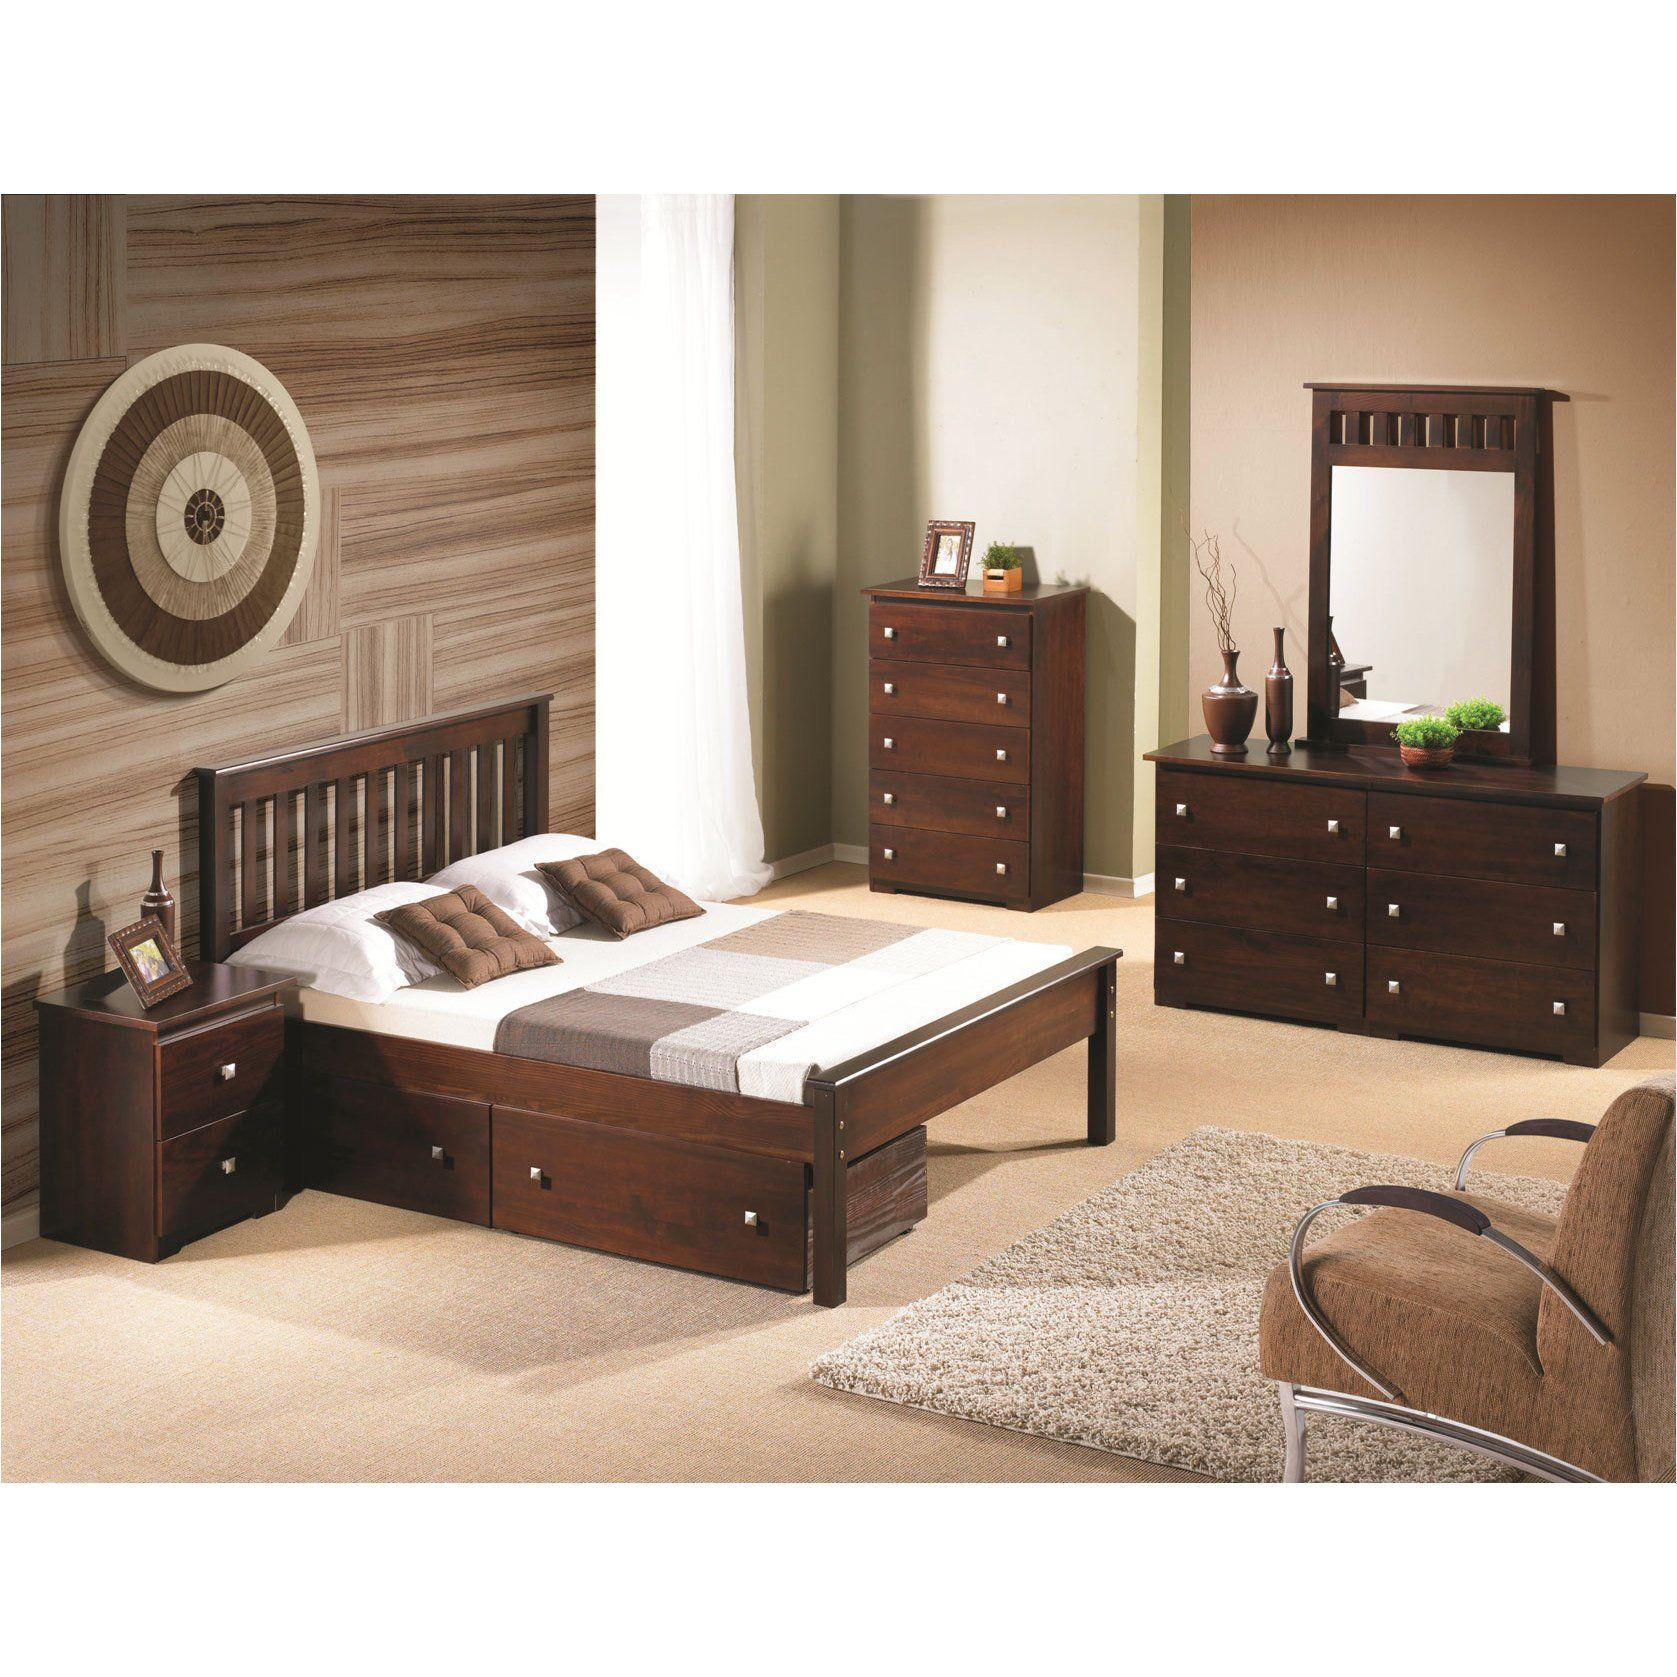 Donco Kids Contempo Full Size Bed Espresso Finish Assembly